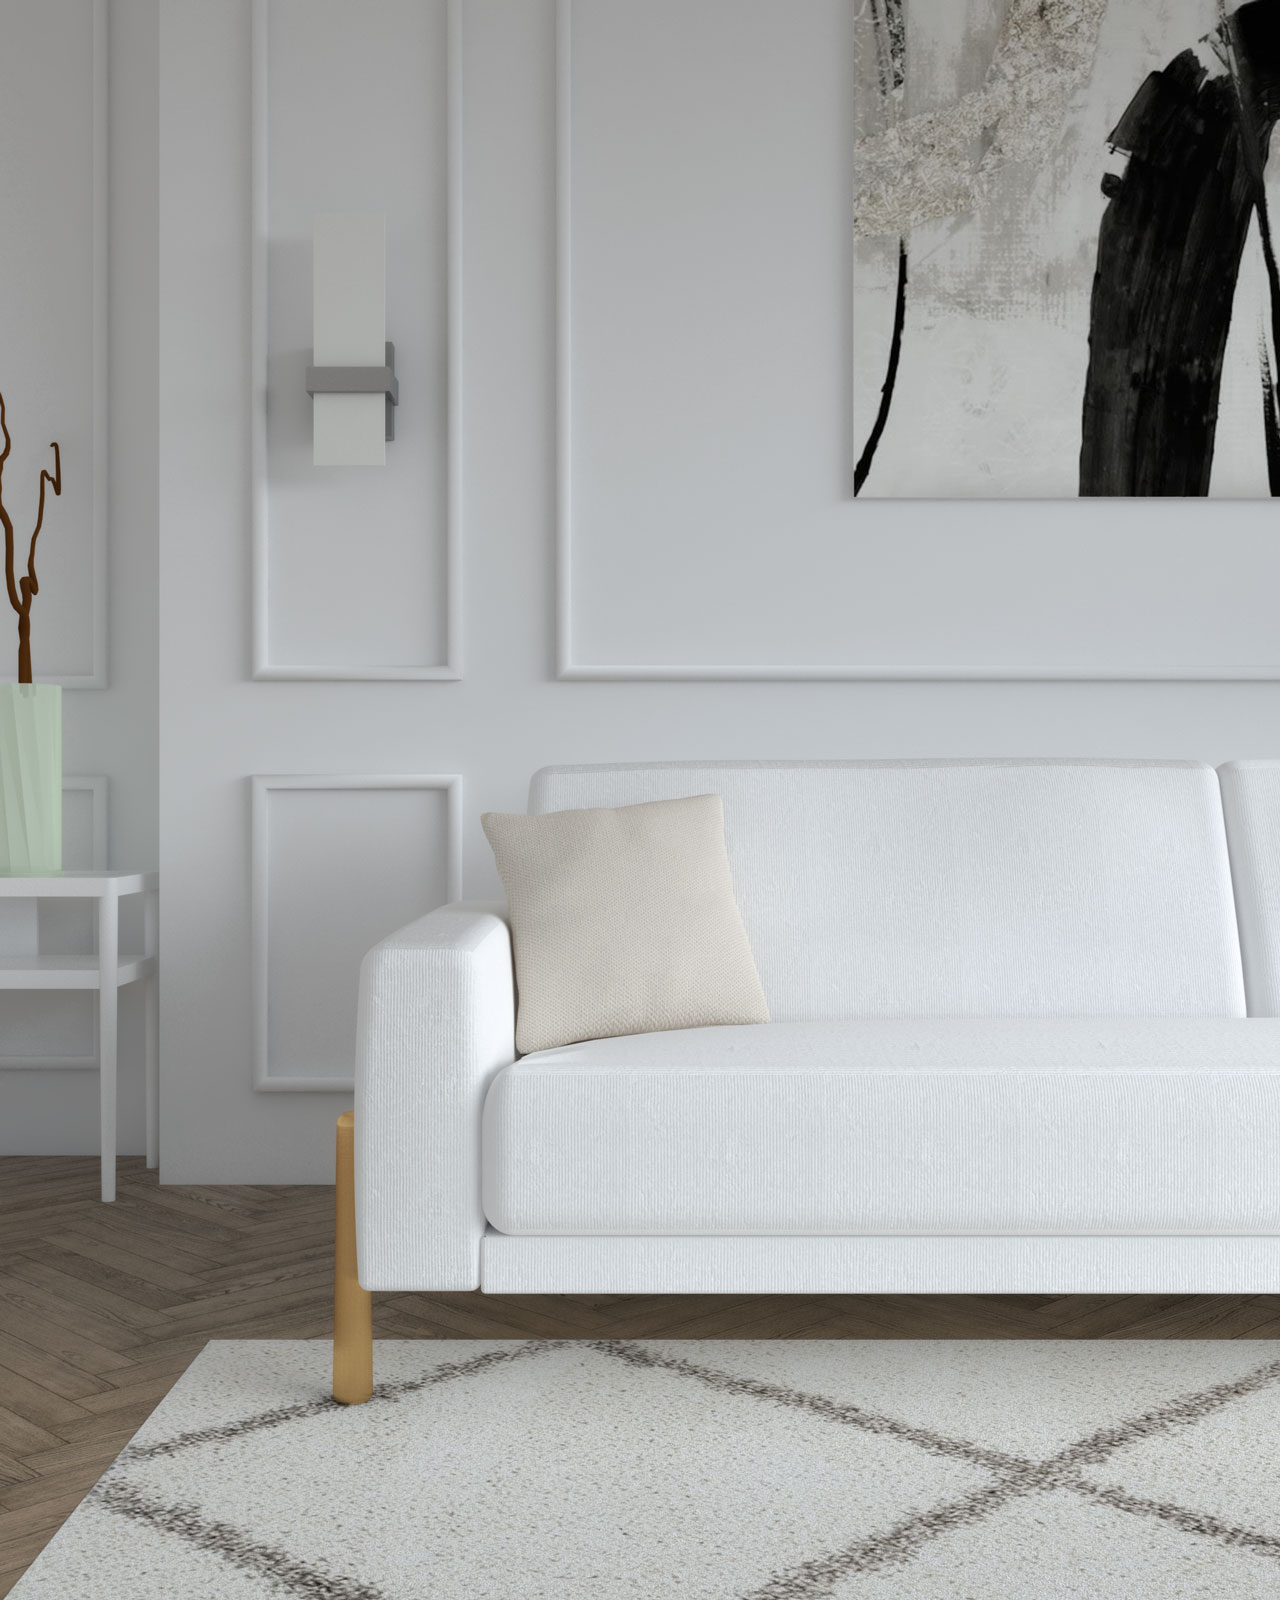 White couch with beige cushions